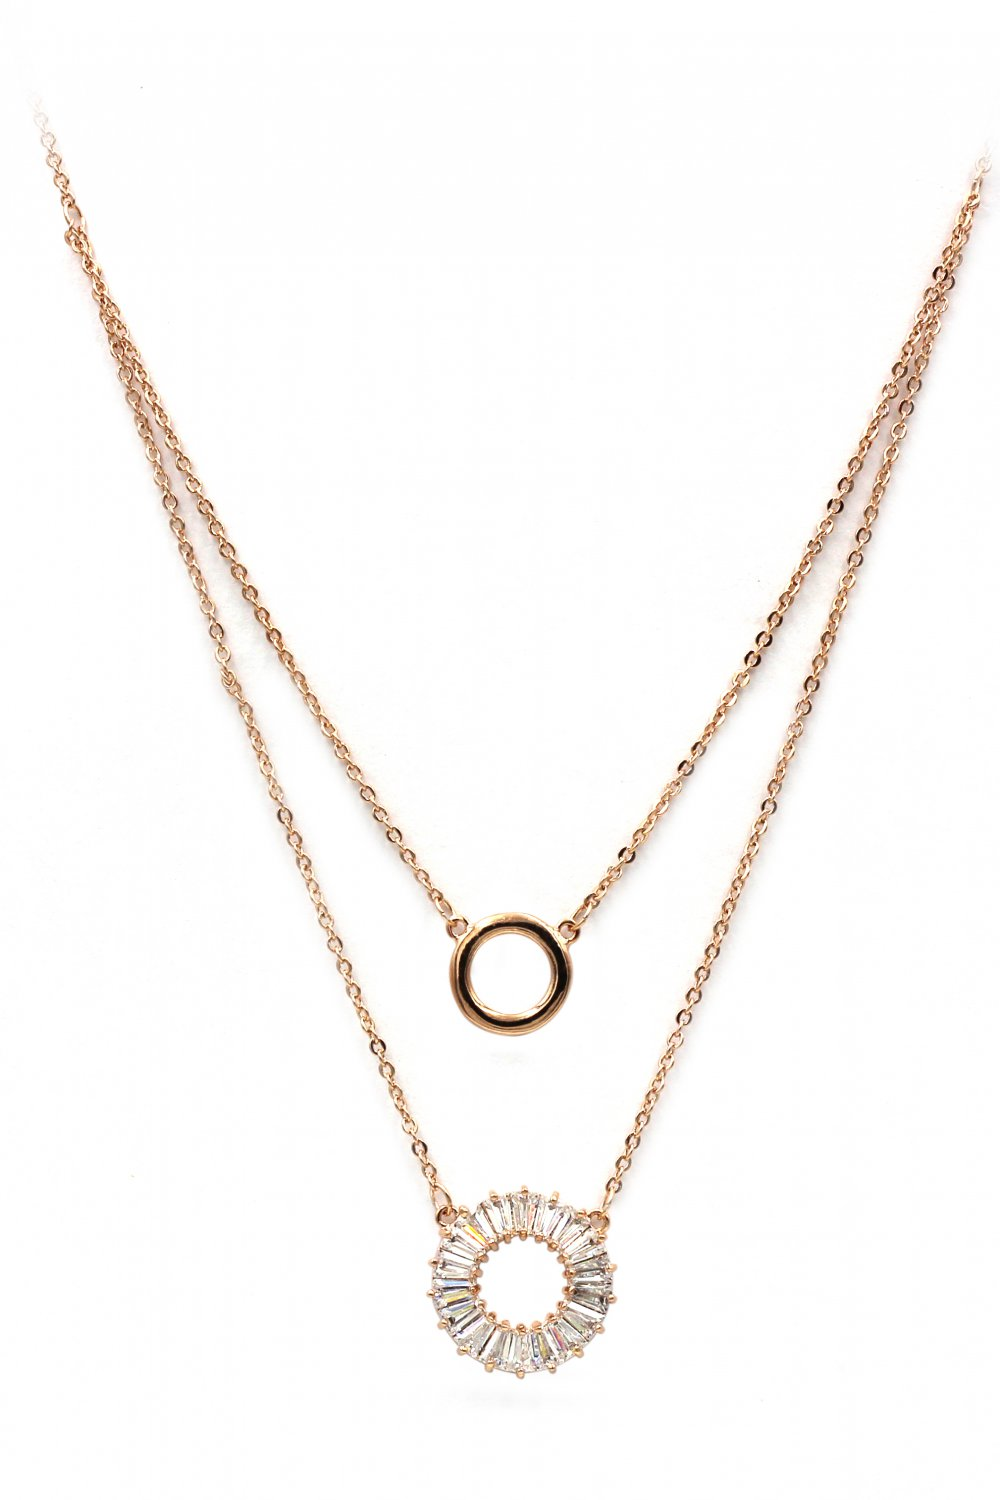 Duplexes crystal circle rose gold necklace